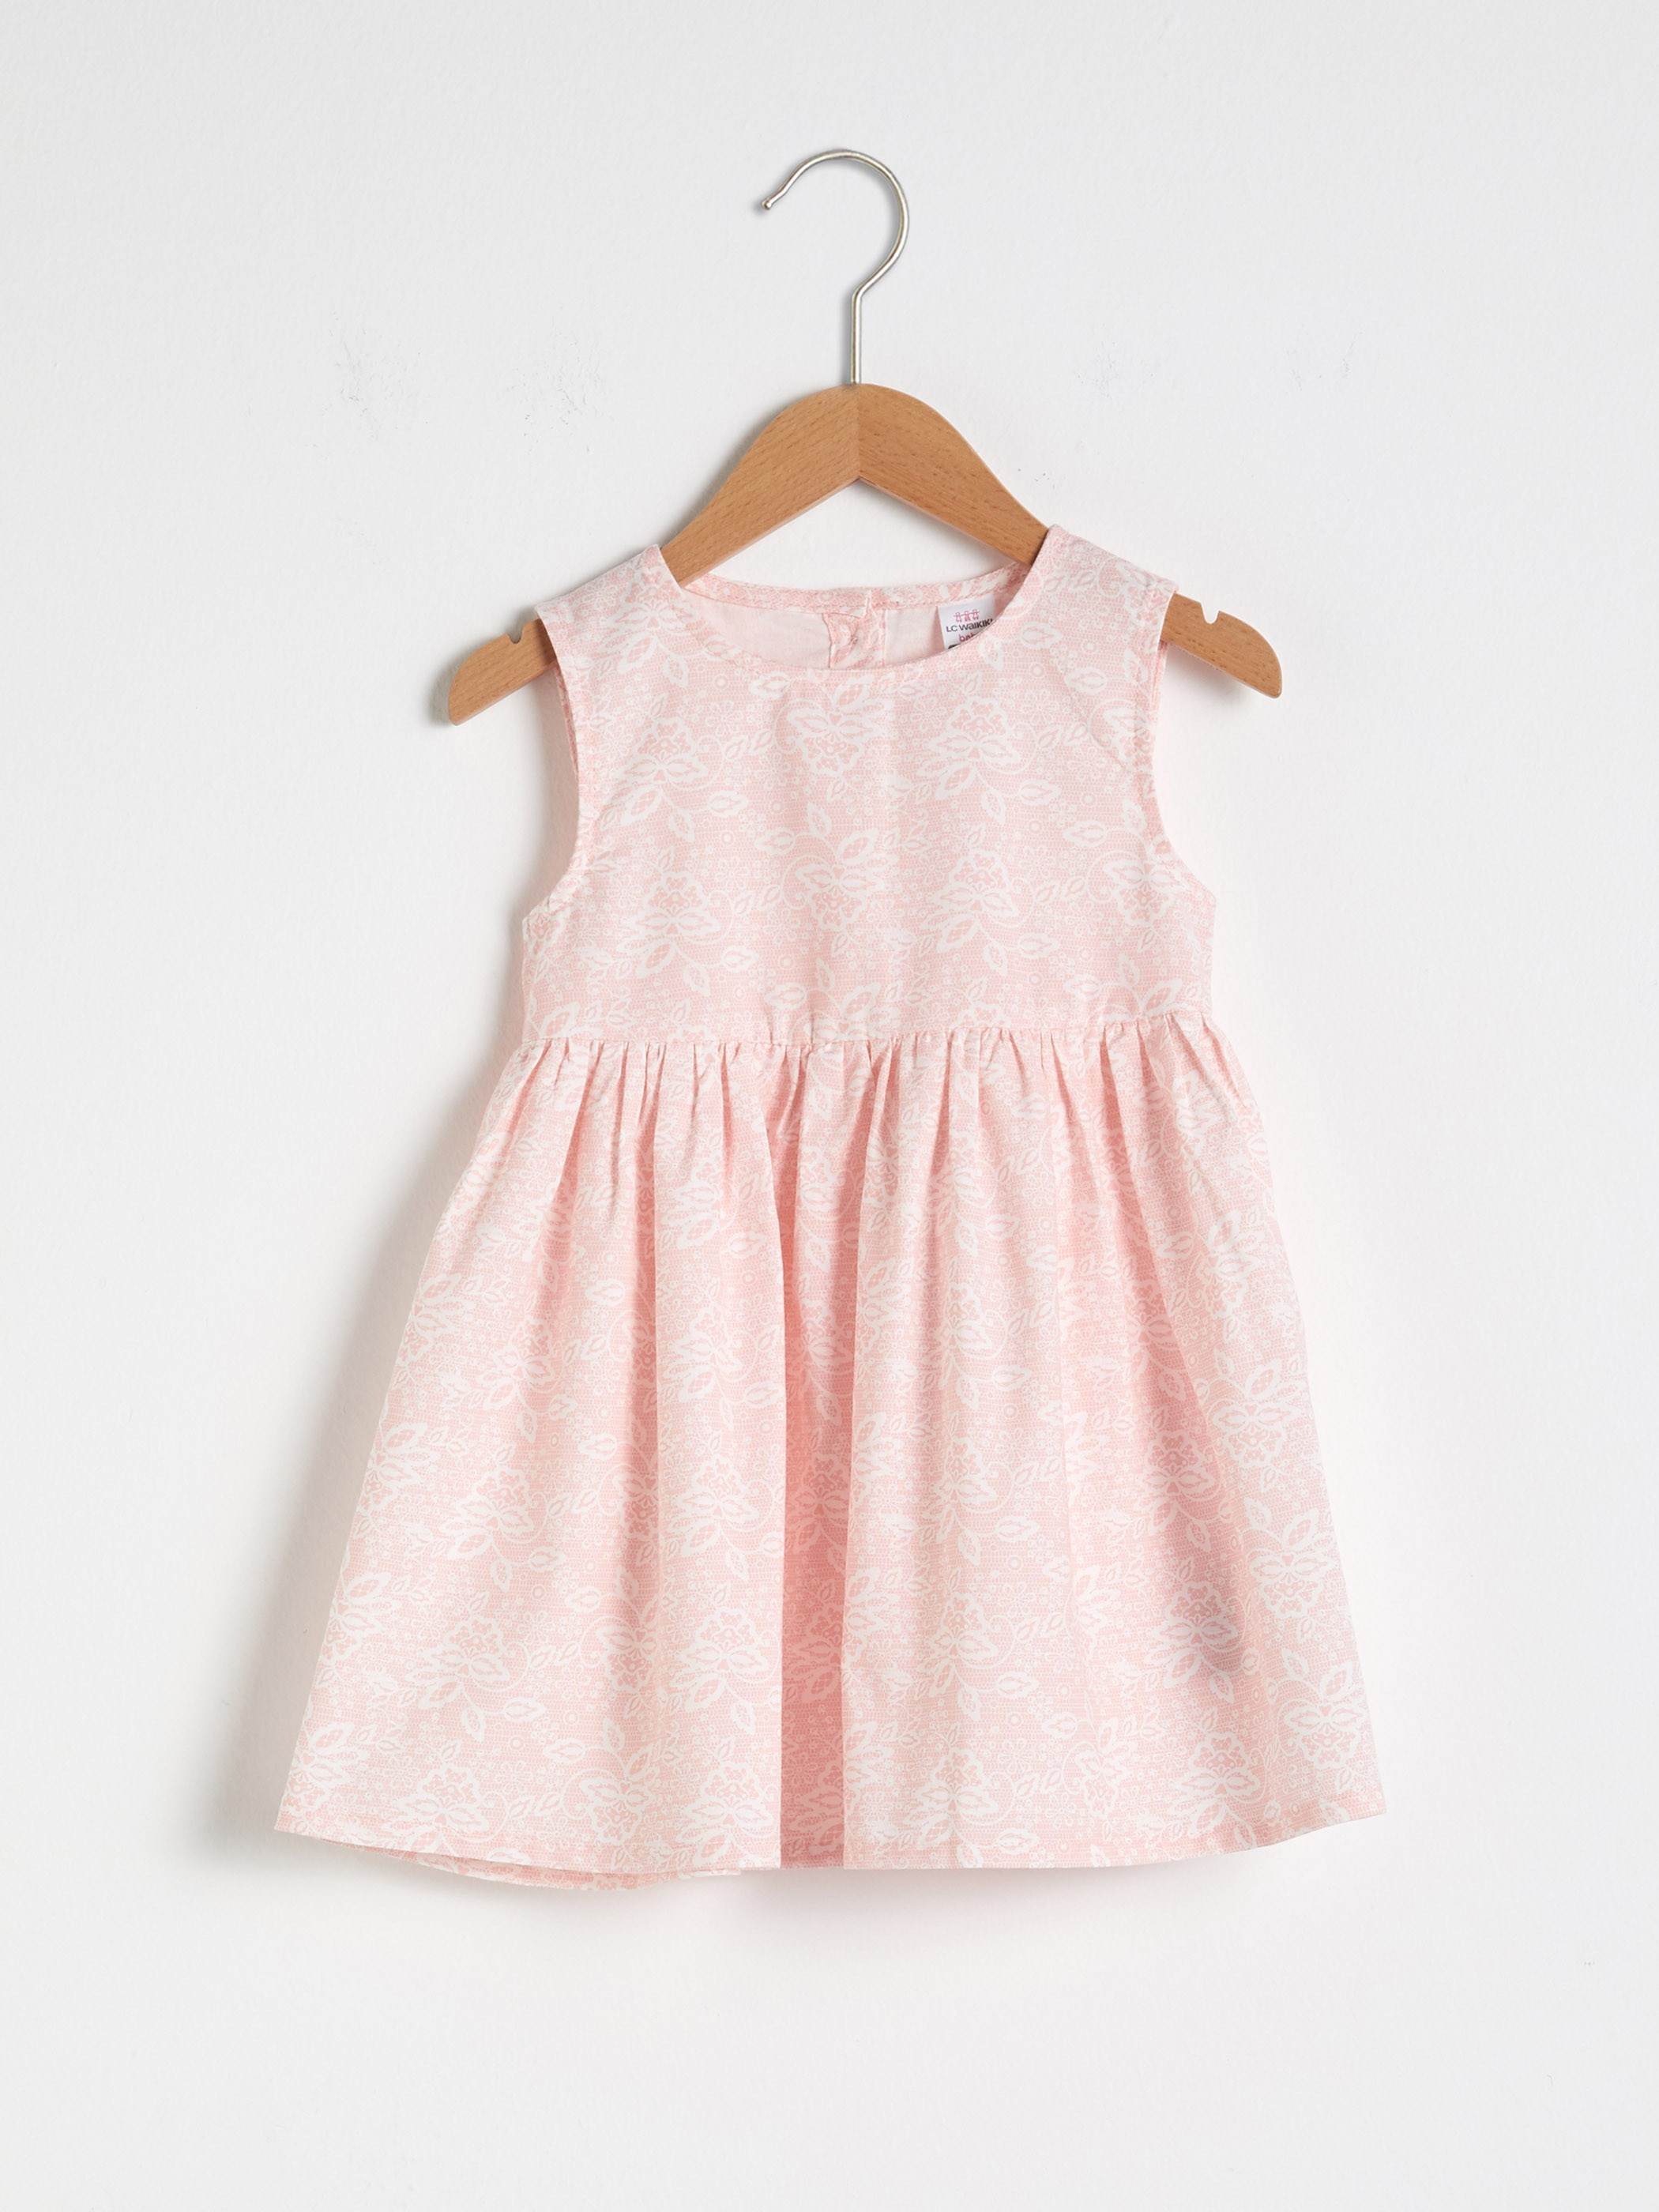 PINK - Baby Girl's Printed Dress - S10003Z1